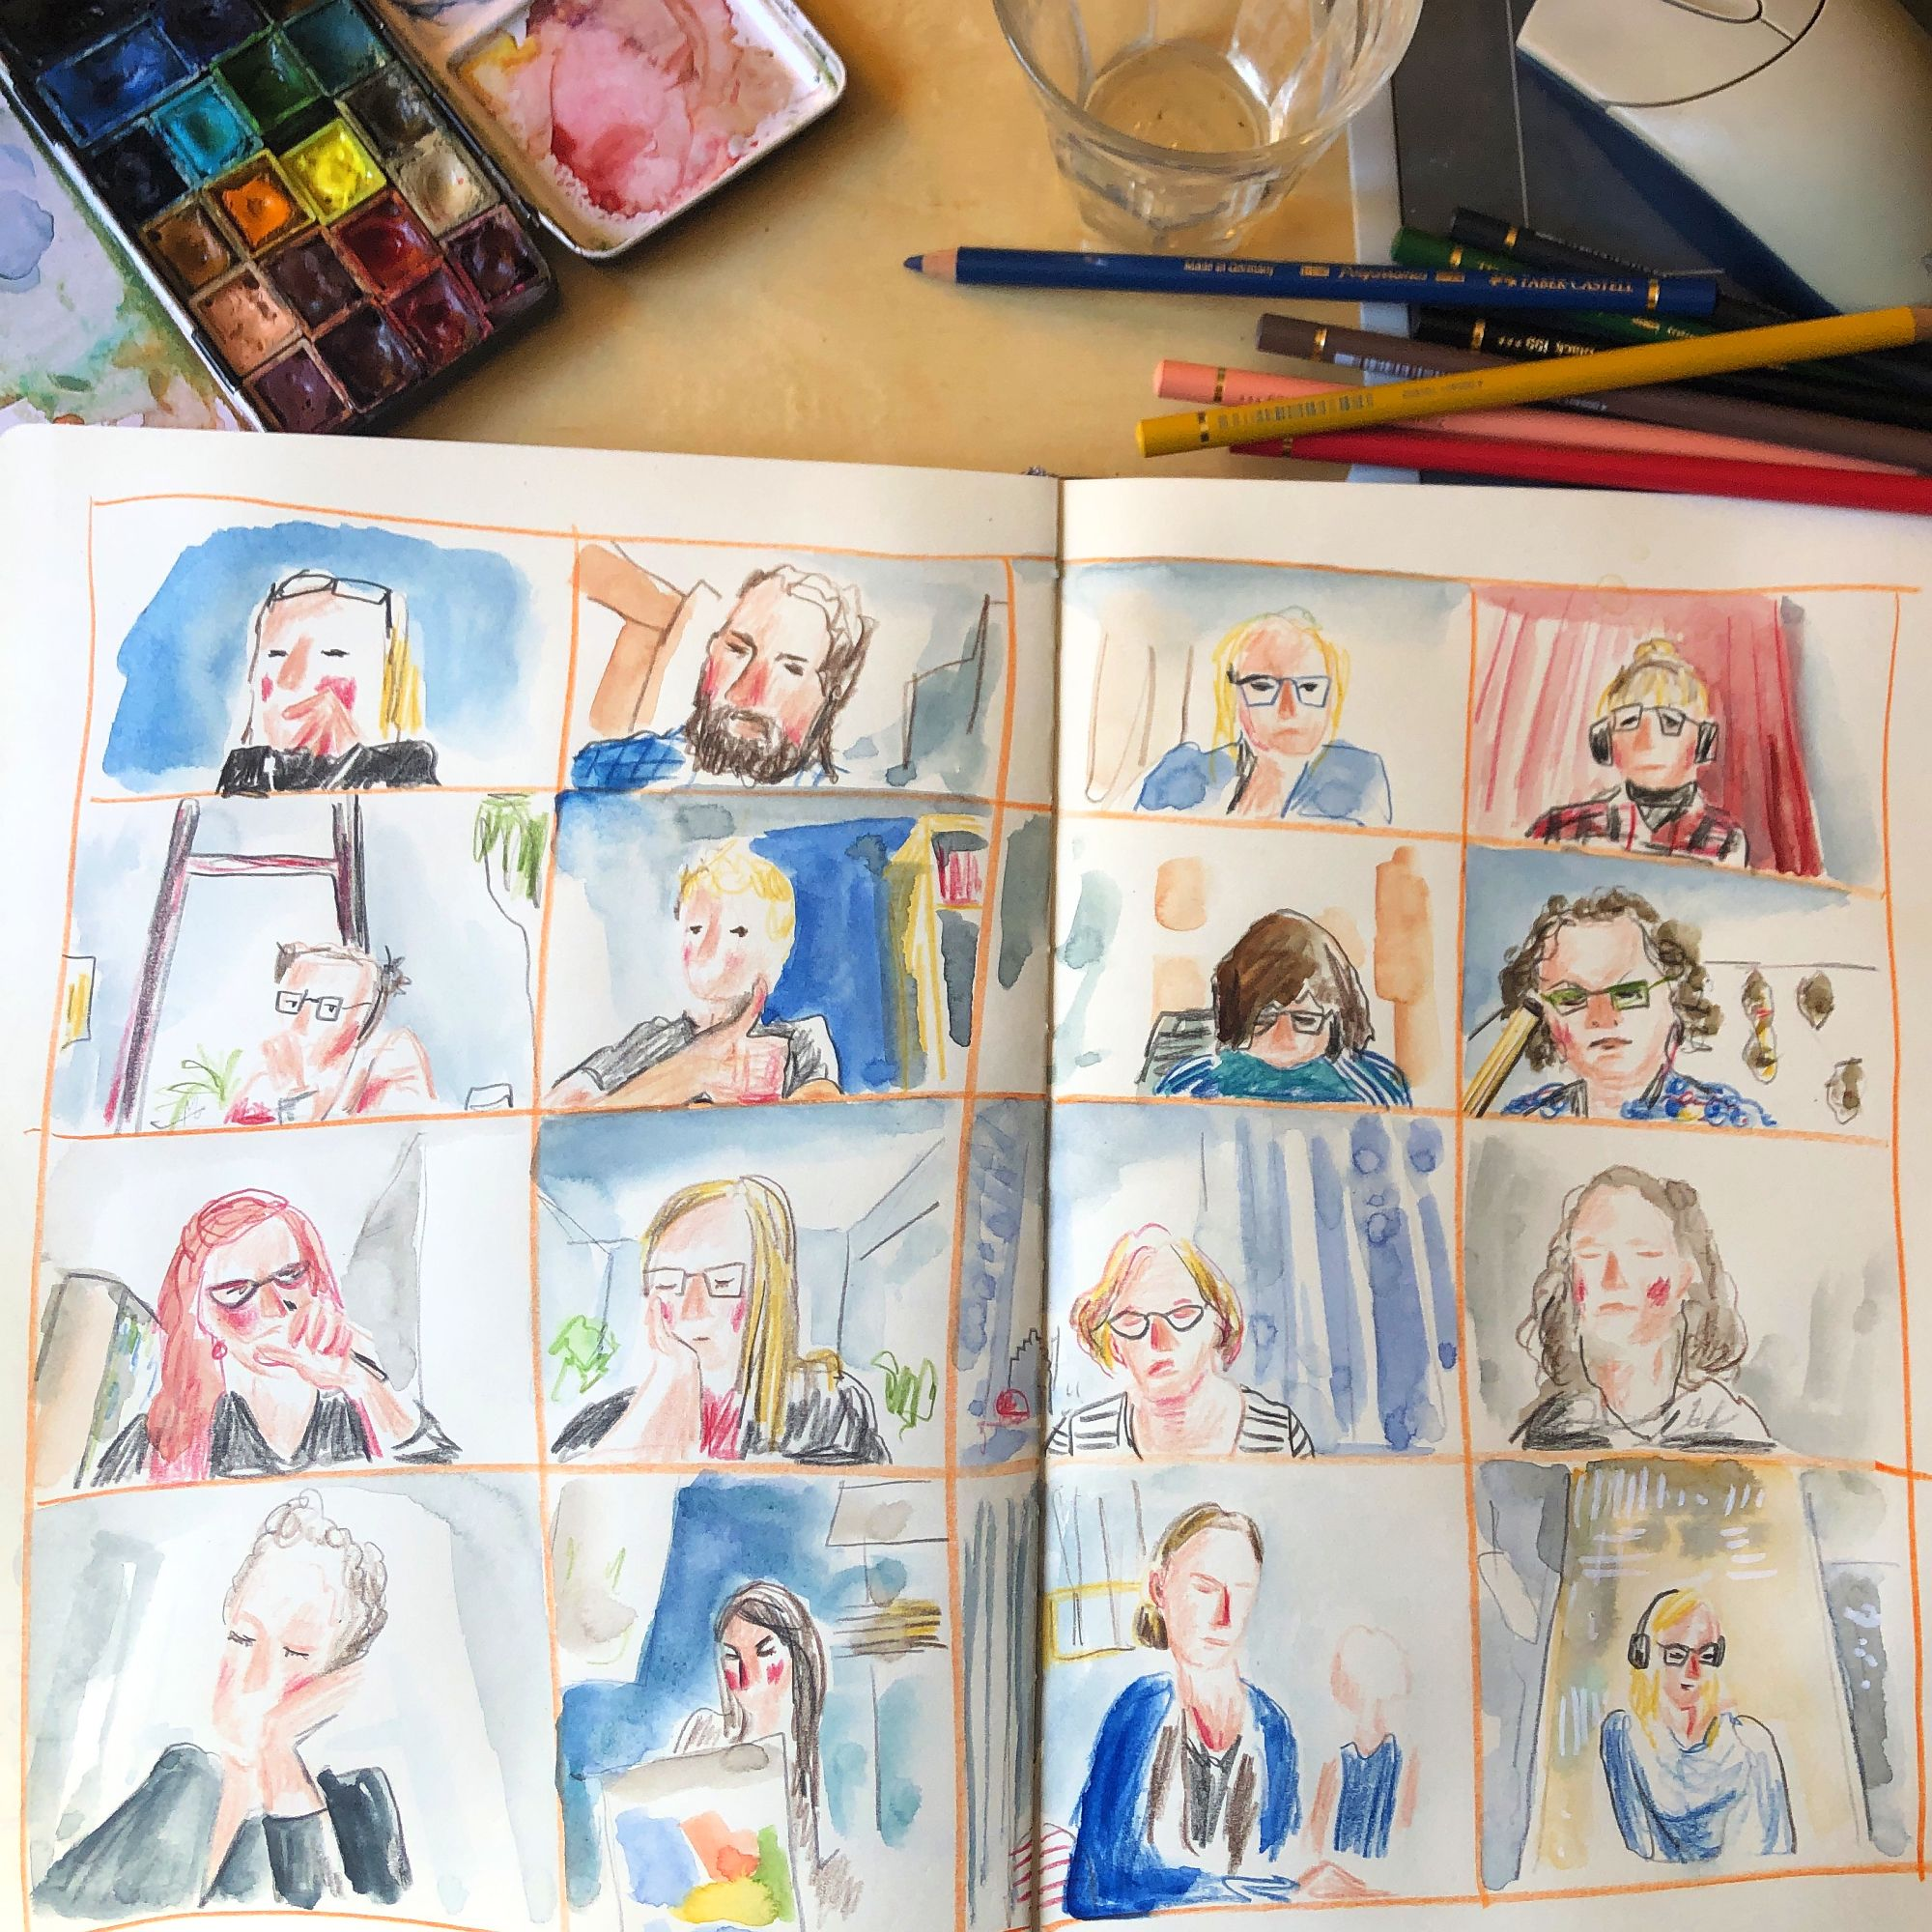 Zoommeeting, 20 april 2020. Aquarel Heleen van den Broek